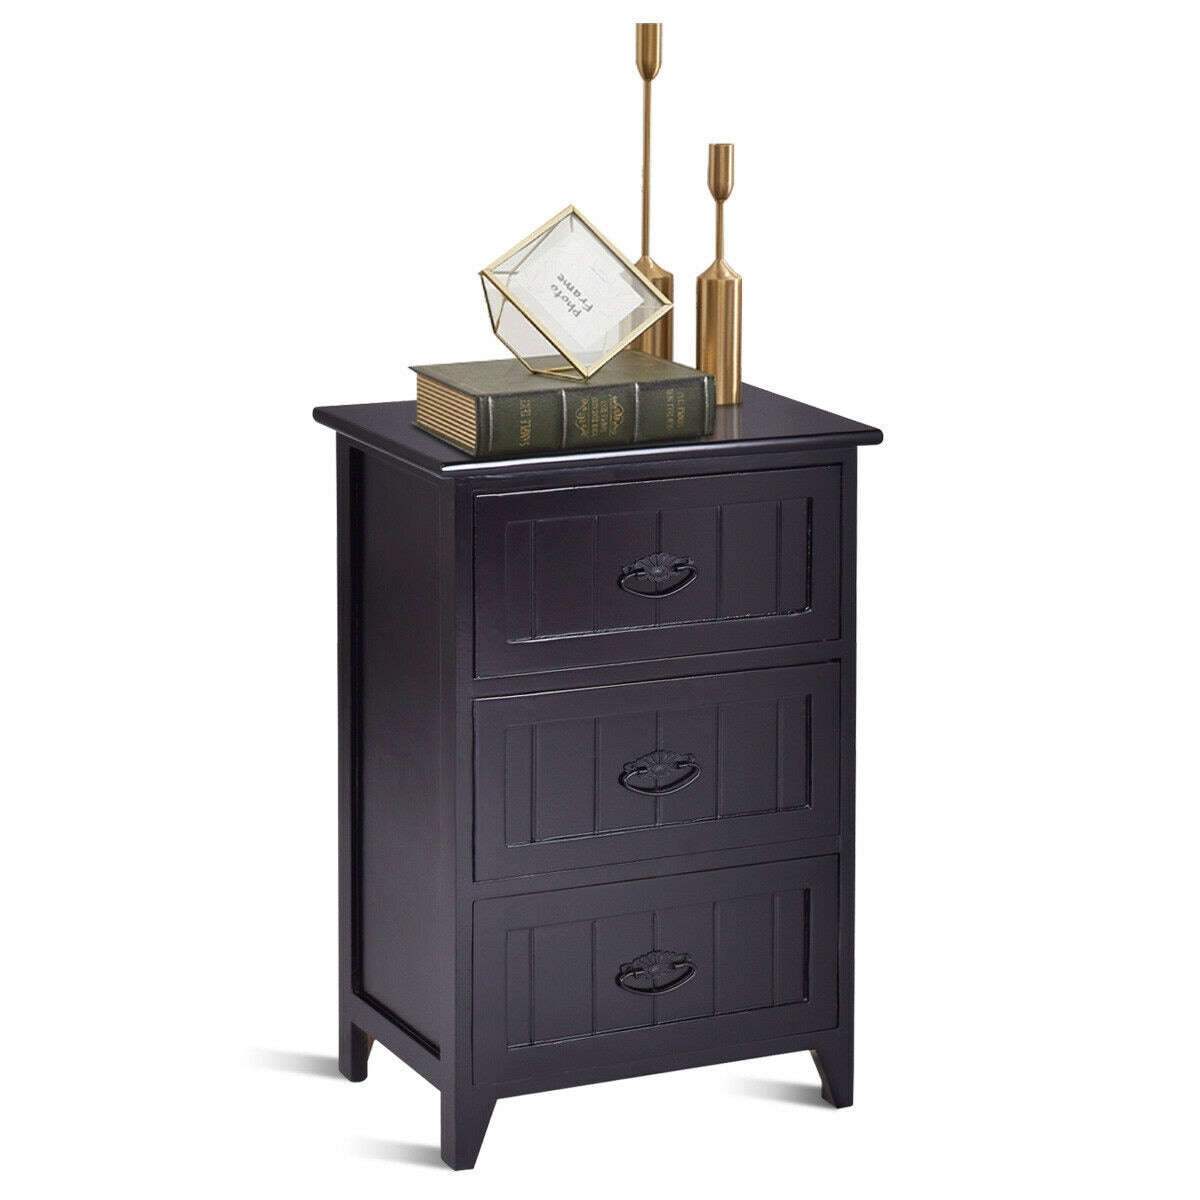 Black End Tables With Drawer Gymax 3 Drawers Nightstand End Table Storage Wood Side Bedside Black